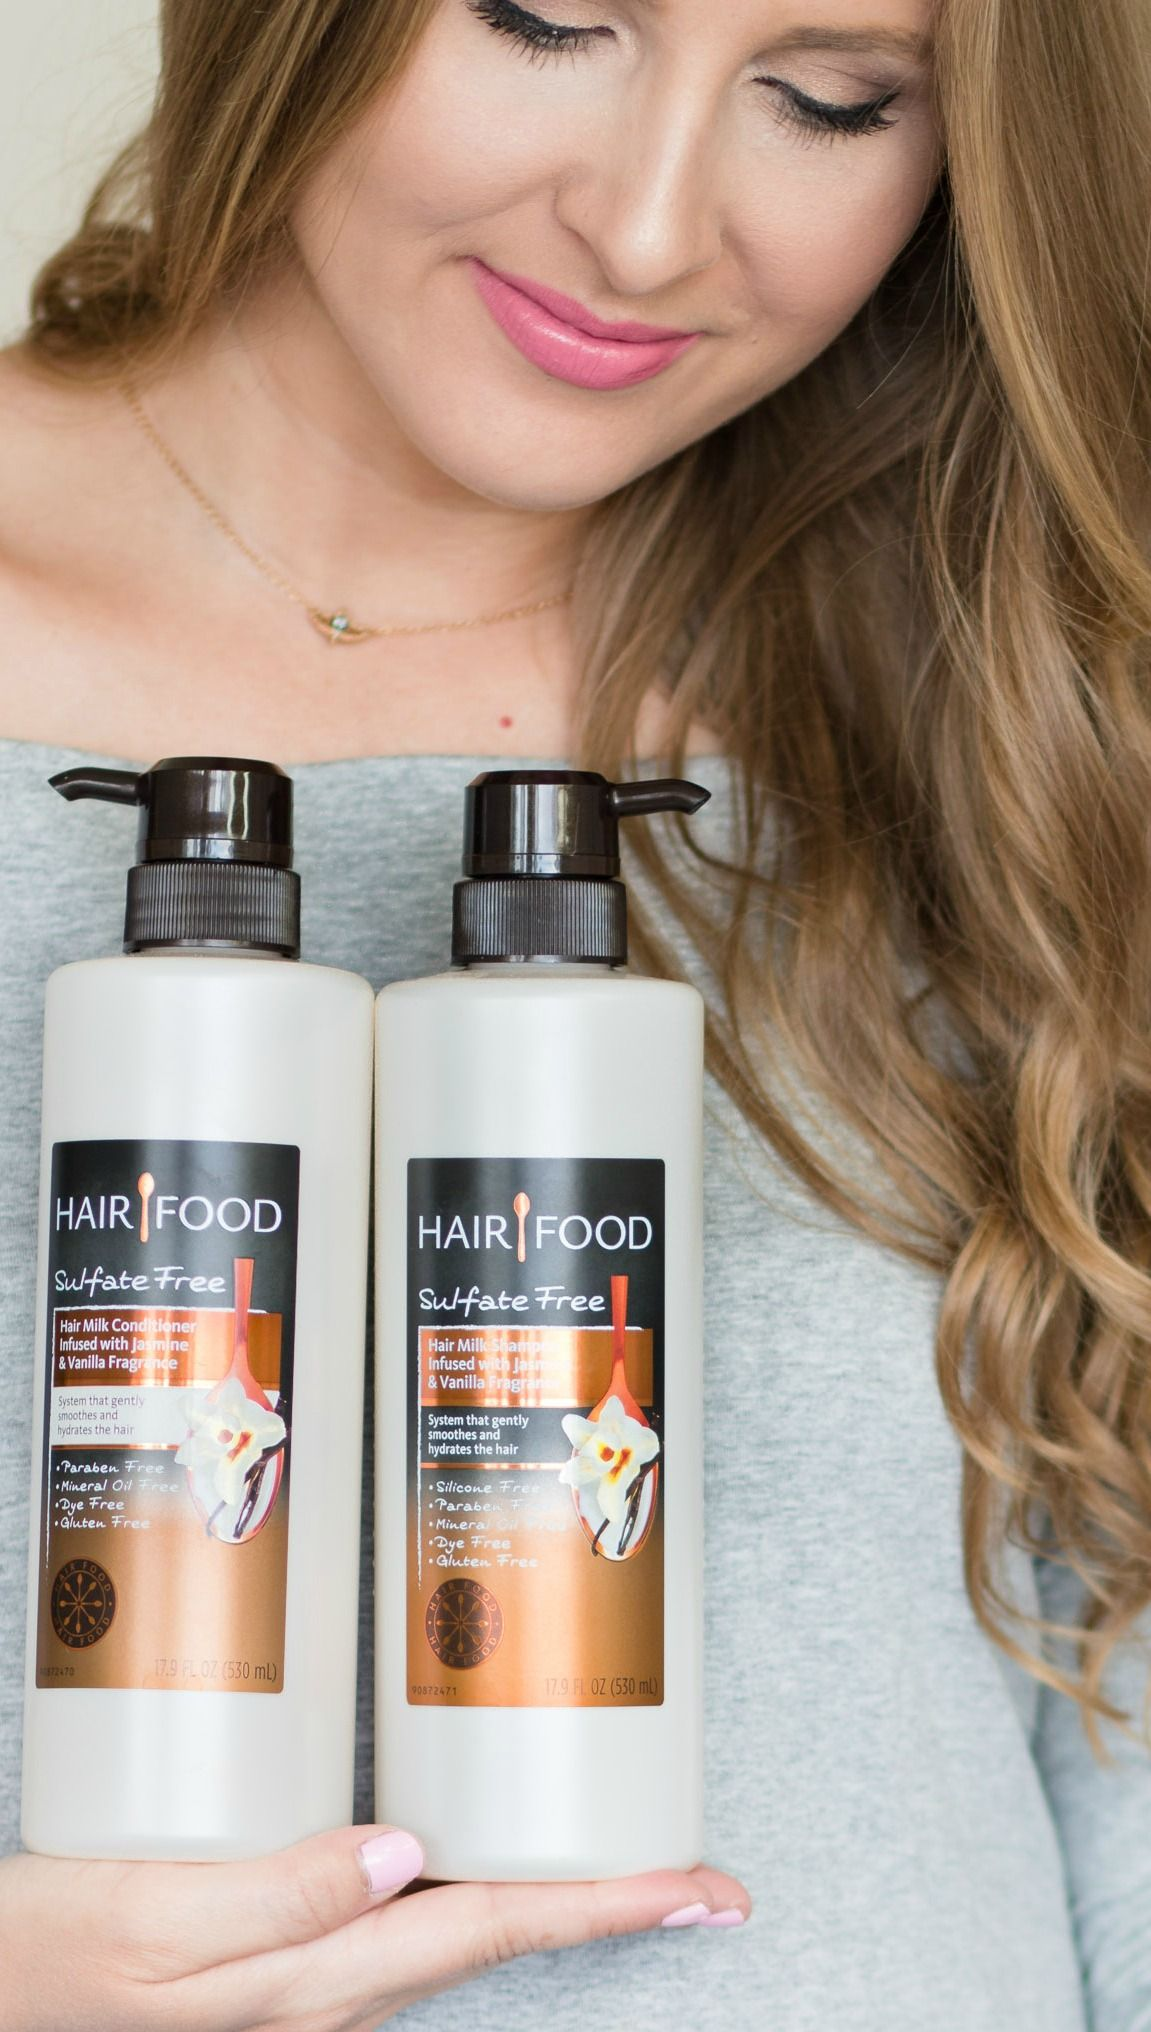 Why you should use sulfatefree hair products + Hair Food